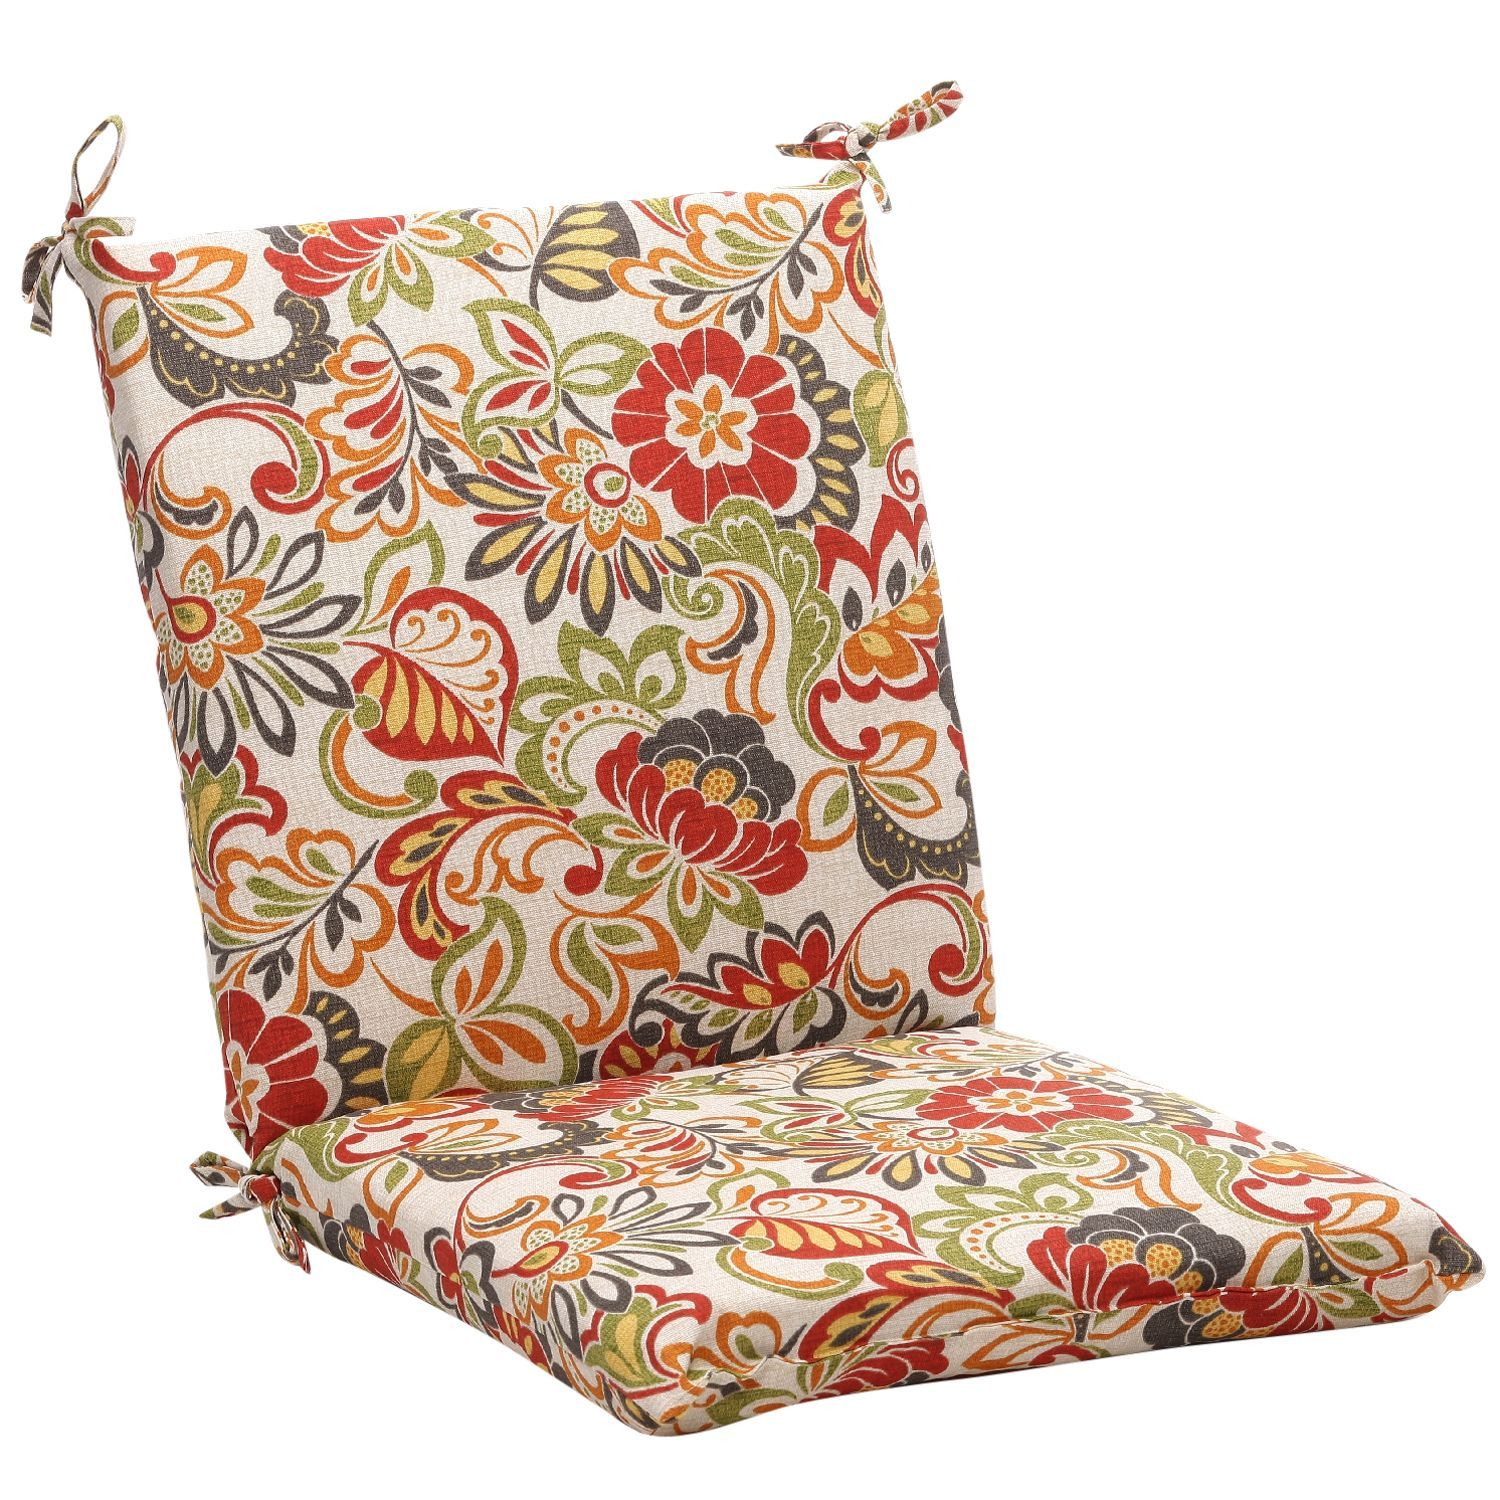 Relax In Comfort On This Weather Resistant Outdoor Chair Cushion